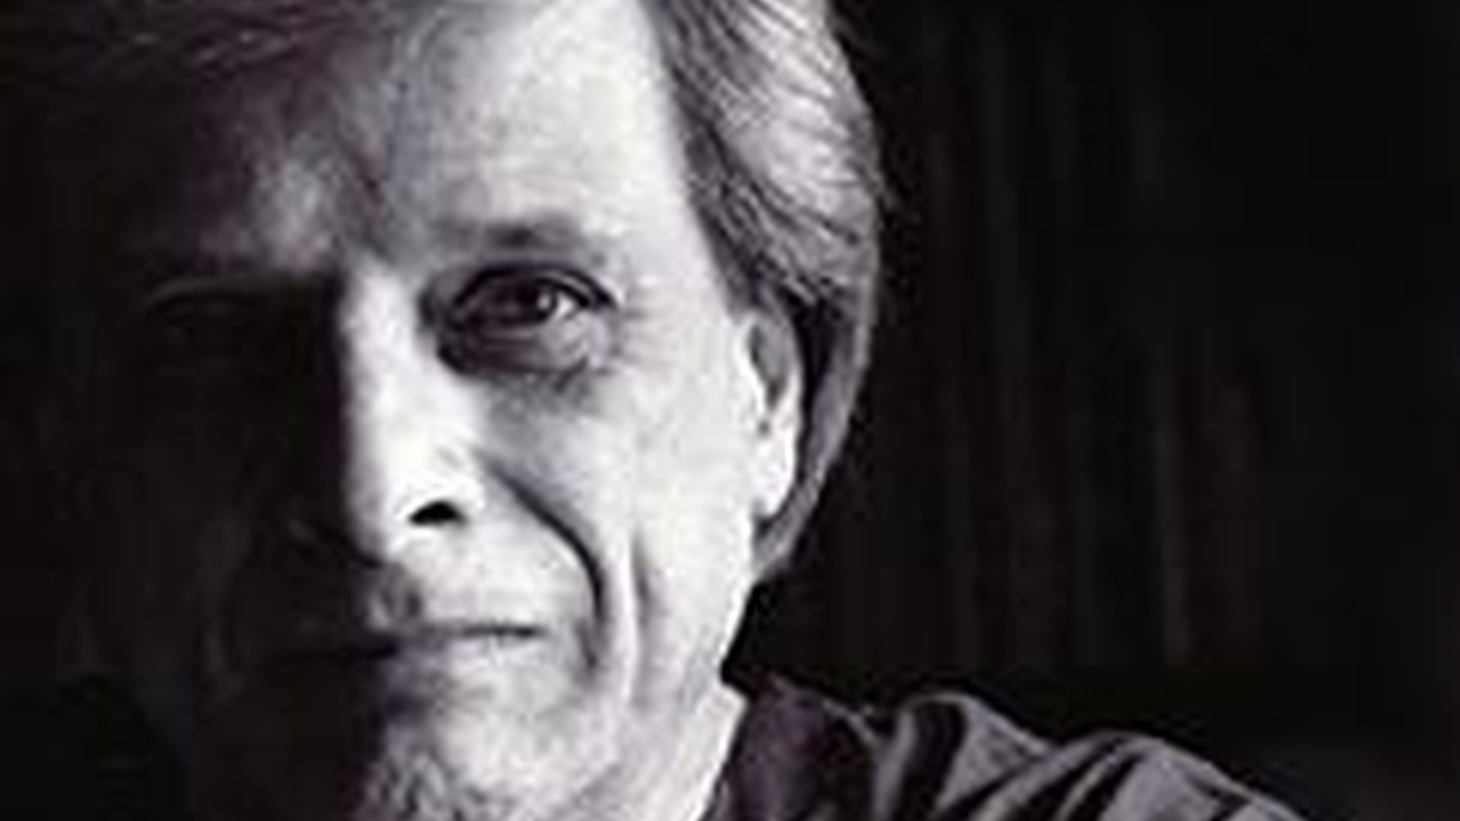 Award winning sci-fi literary maverick Harlan Ellison talks about why and how he started writing. Architecture writer Philip Nobel takes us for a ride on his skateboard.